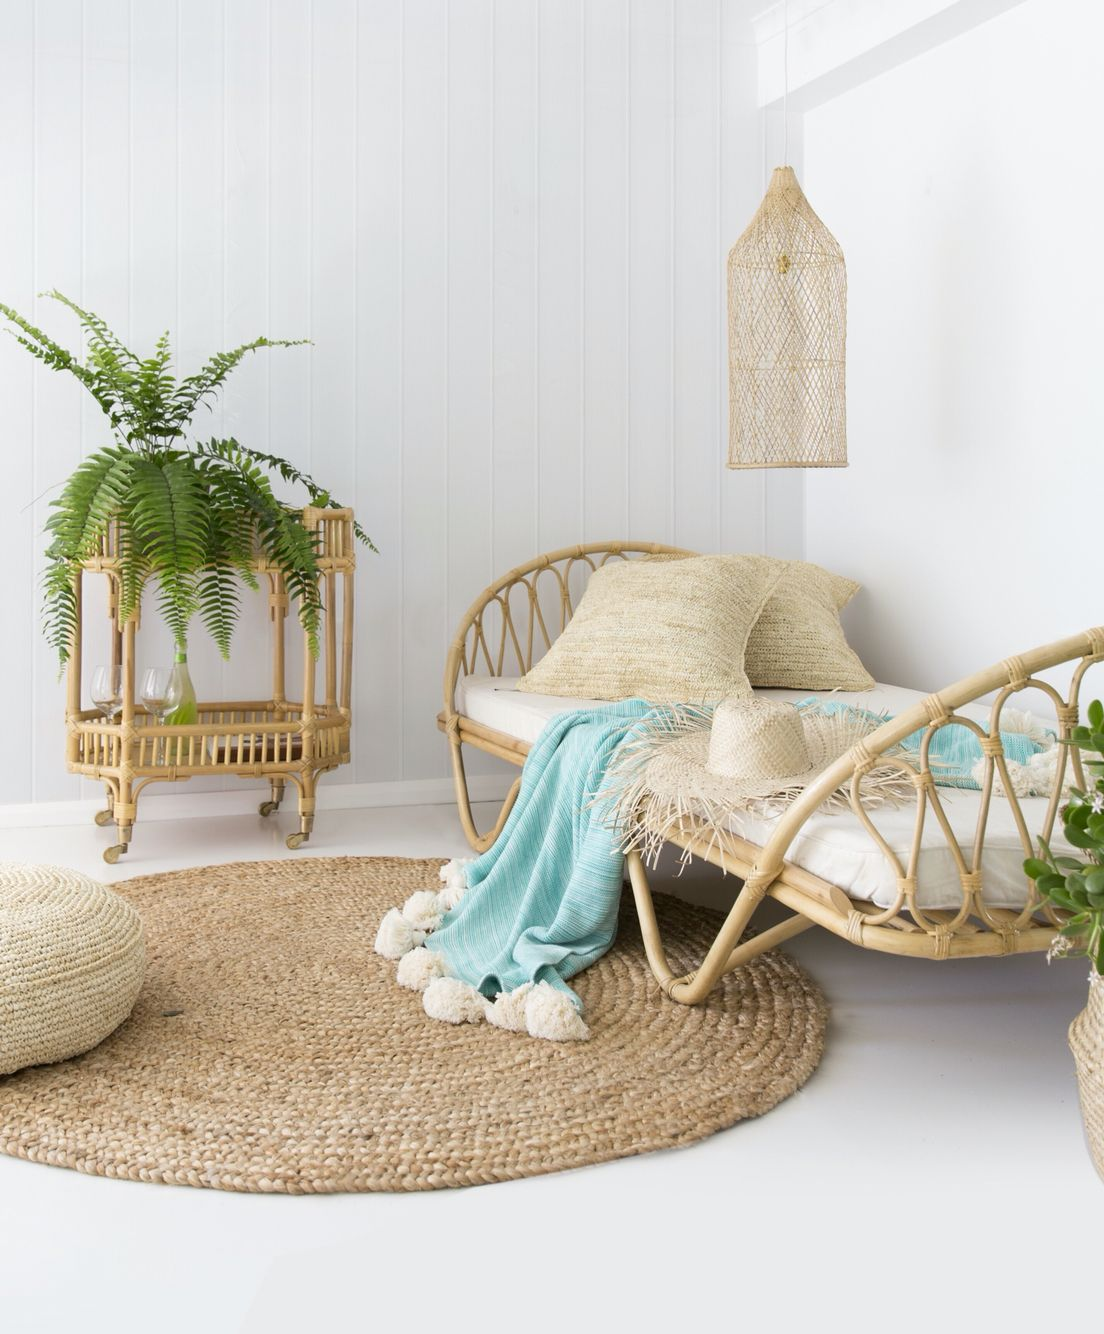 paris day bed which doubles as a kids bed all made from natural